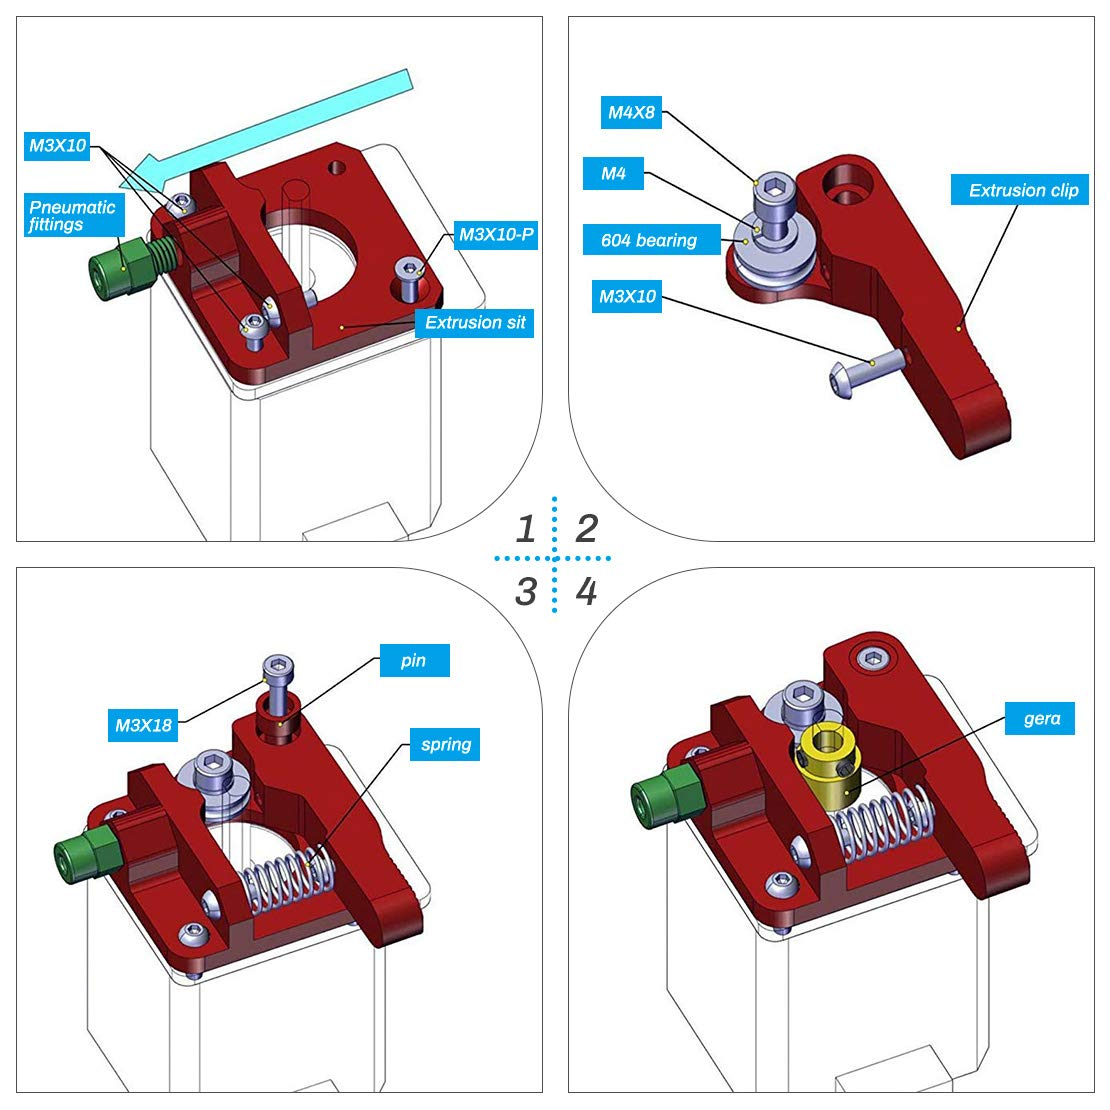 CR-10 CR-10 Extruder Upgraded Replacement 3D Printer Extruders for Creality ENDER3 CR-10S CR-10 S5 Right Hand CR-10 S4 CestMall Ender 3 Extruder MK8 Extruder Aluminum Drive Feed